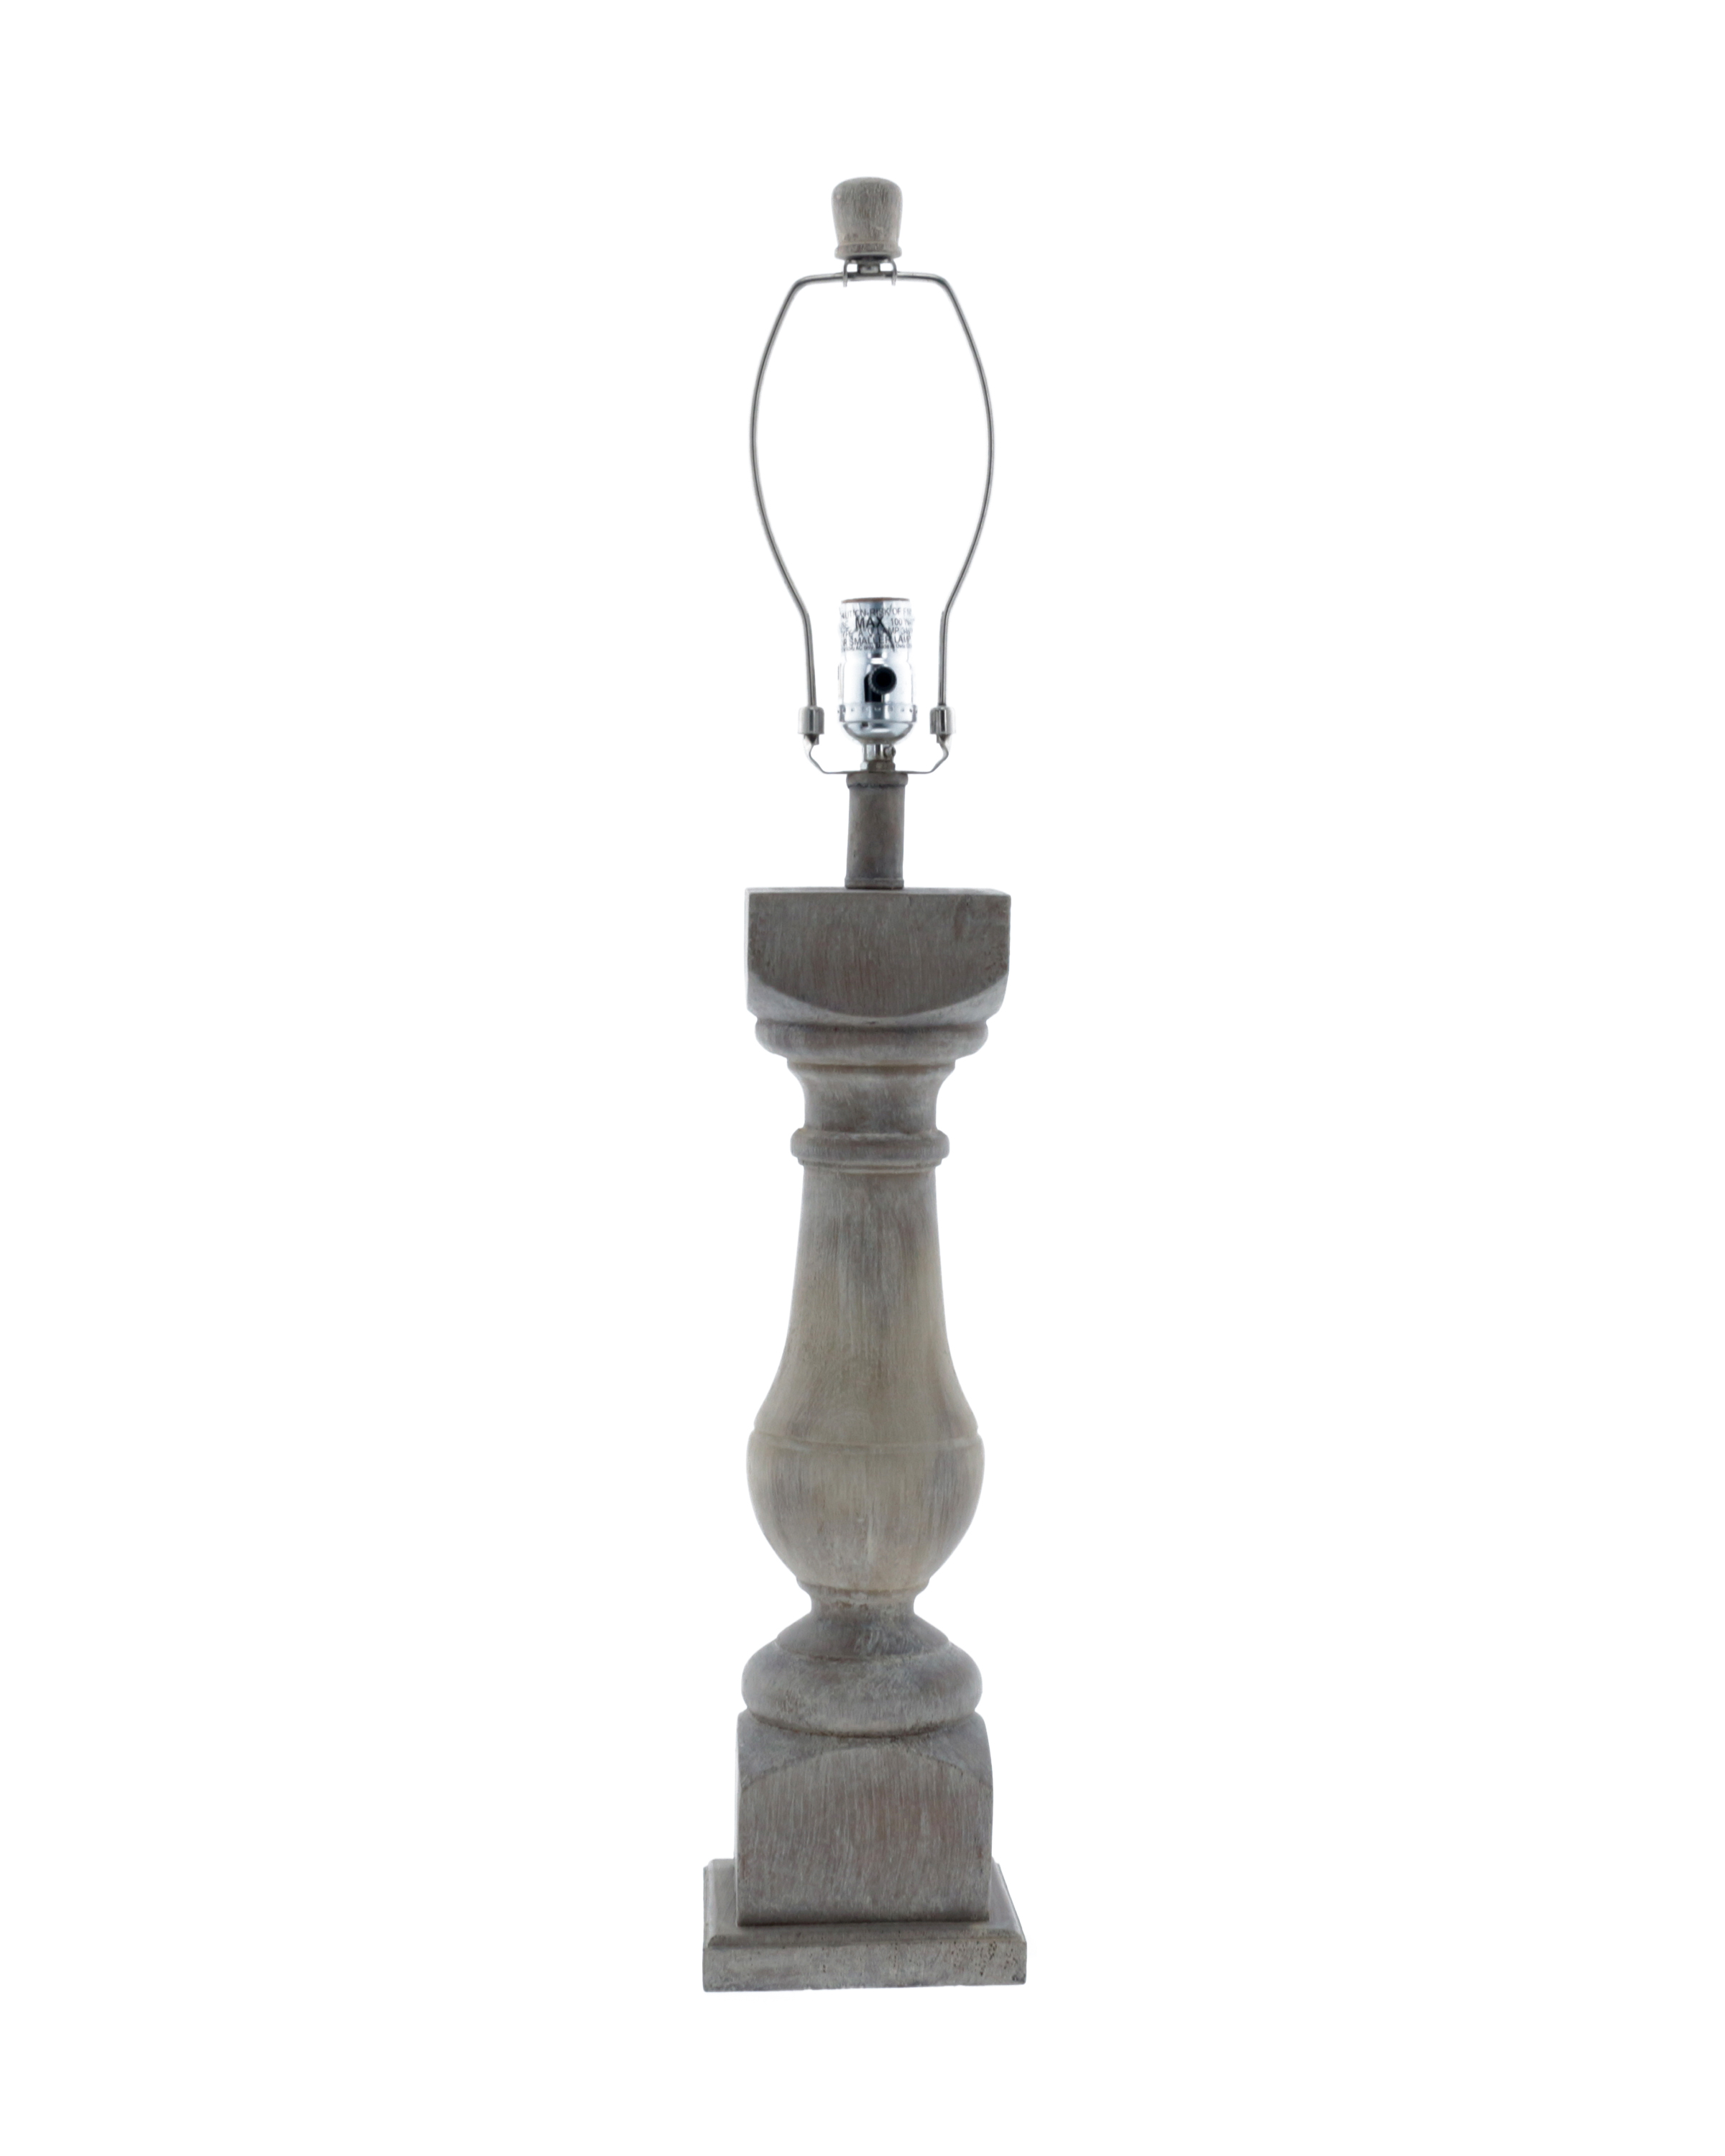 Table Lamp Base Rhone Washed Wood Finish 31 Table Lamp Base Only L2840ww Wholesale Lamps Shades Bulbs Ahs Lighting Wholesaler Value Priced Accent Floor